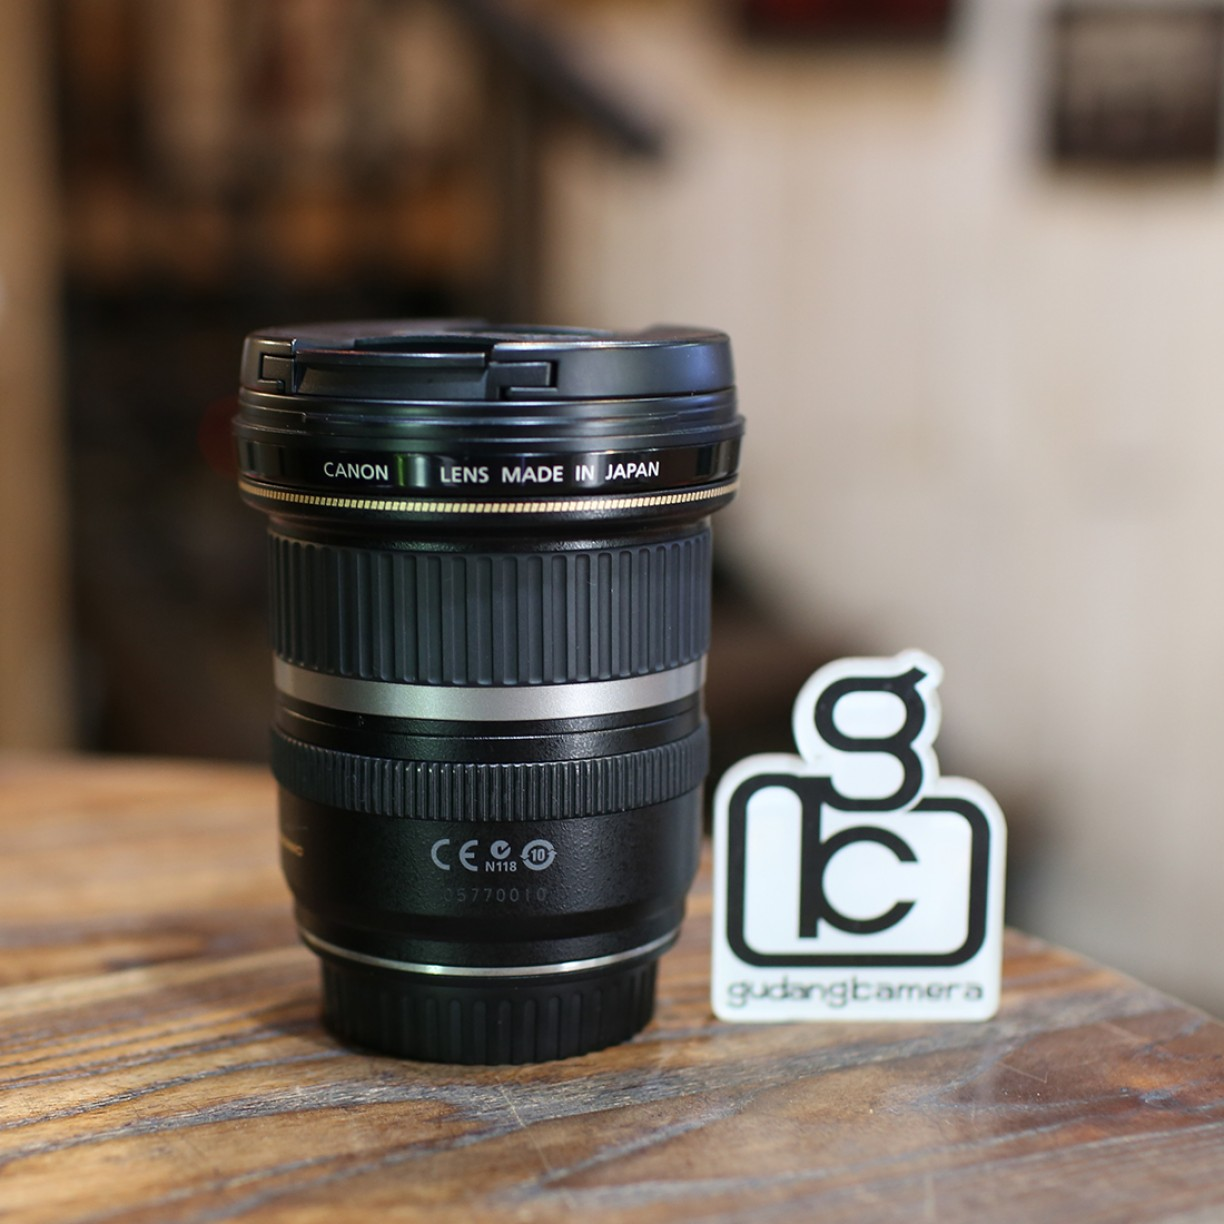 CANON EFS 10-22mm F3.5-4.5 - GOOD CONDITION - 0010